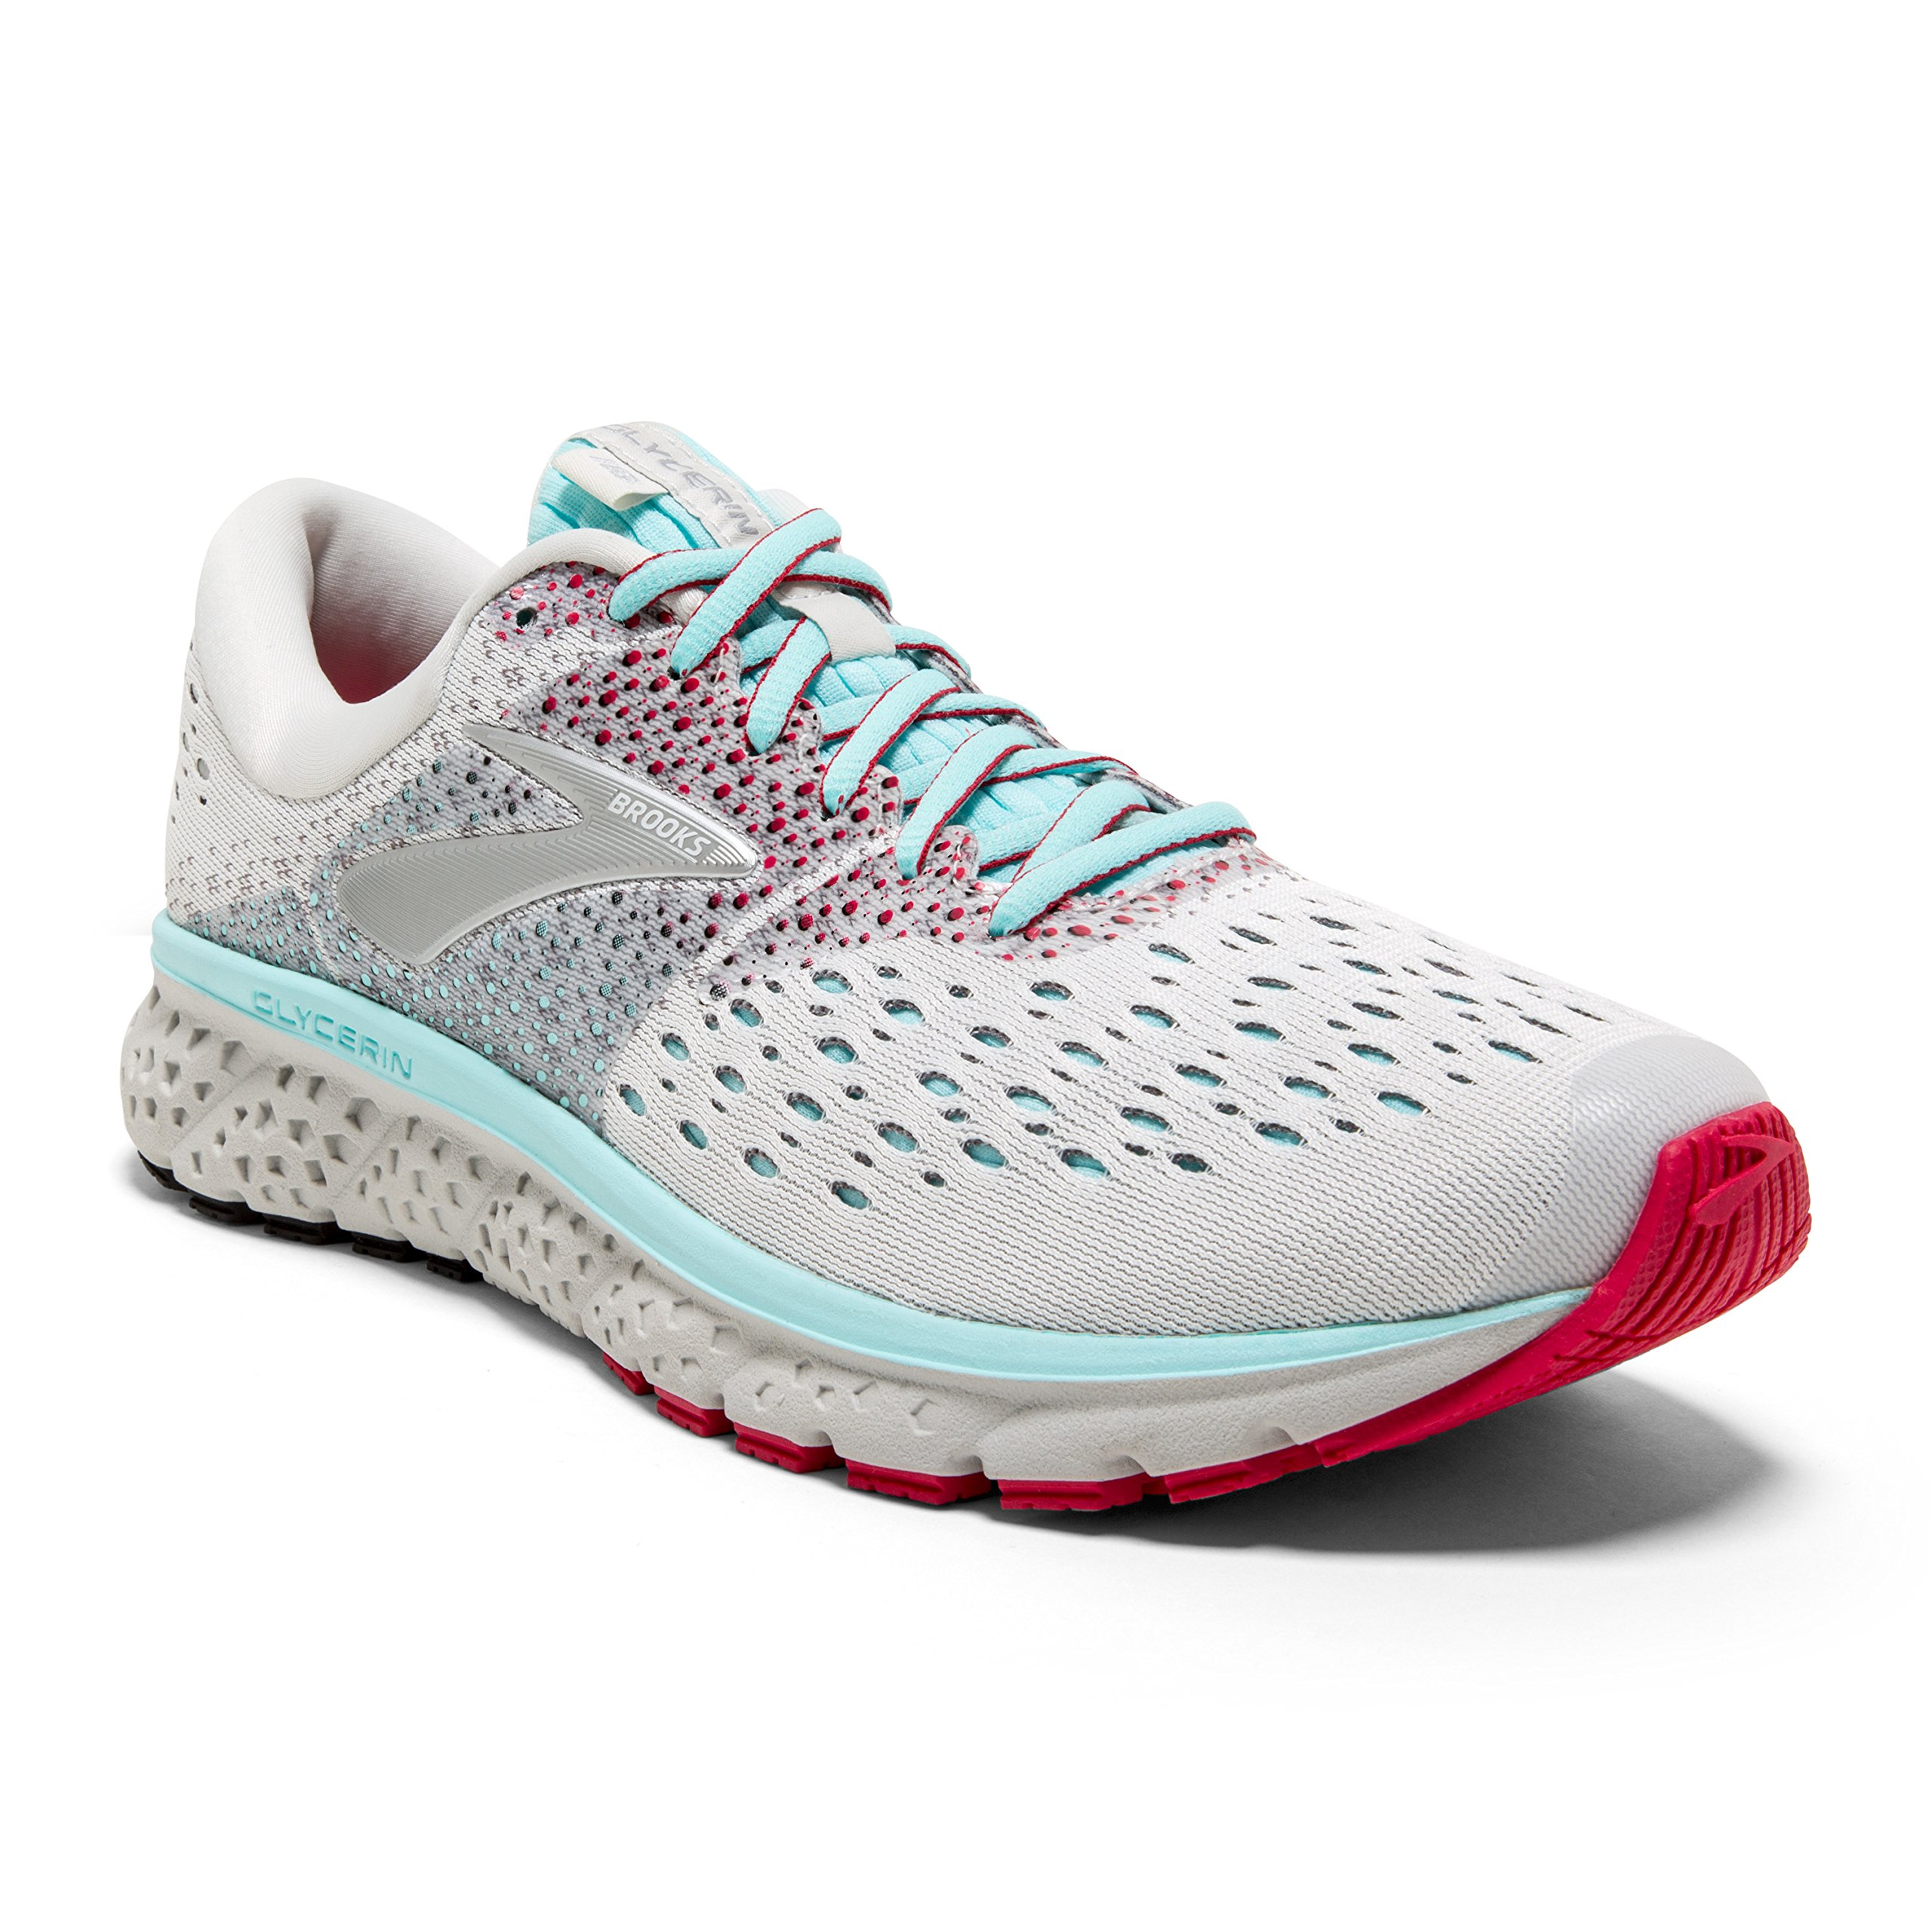 Brooks Womens Glycerin 16 - White/Blue/Pink - B - 12.0 by Brooks